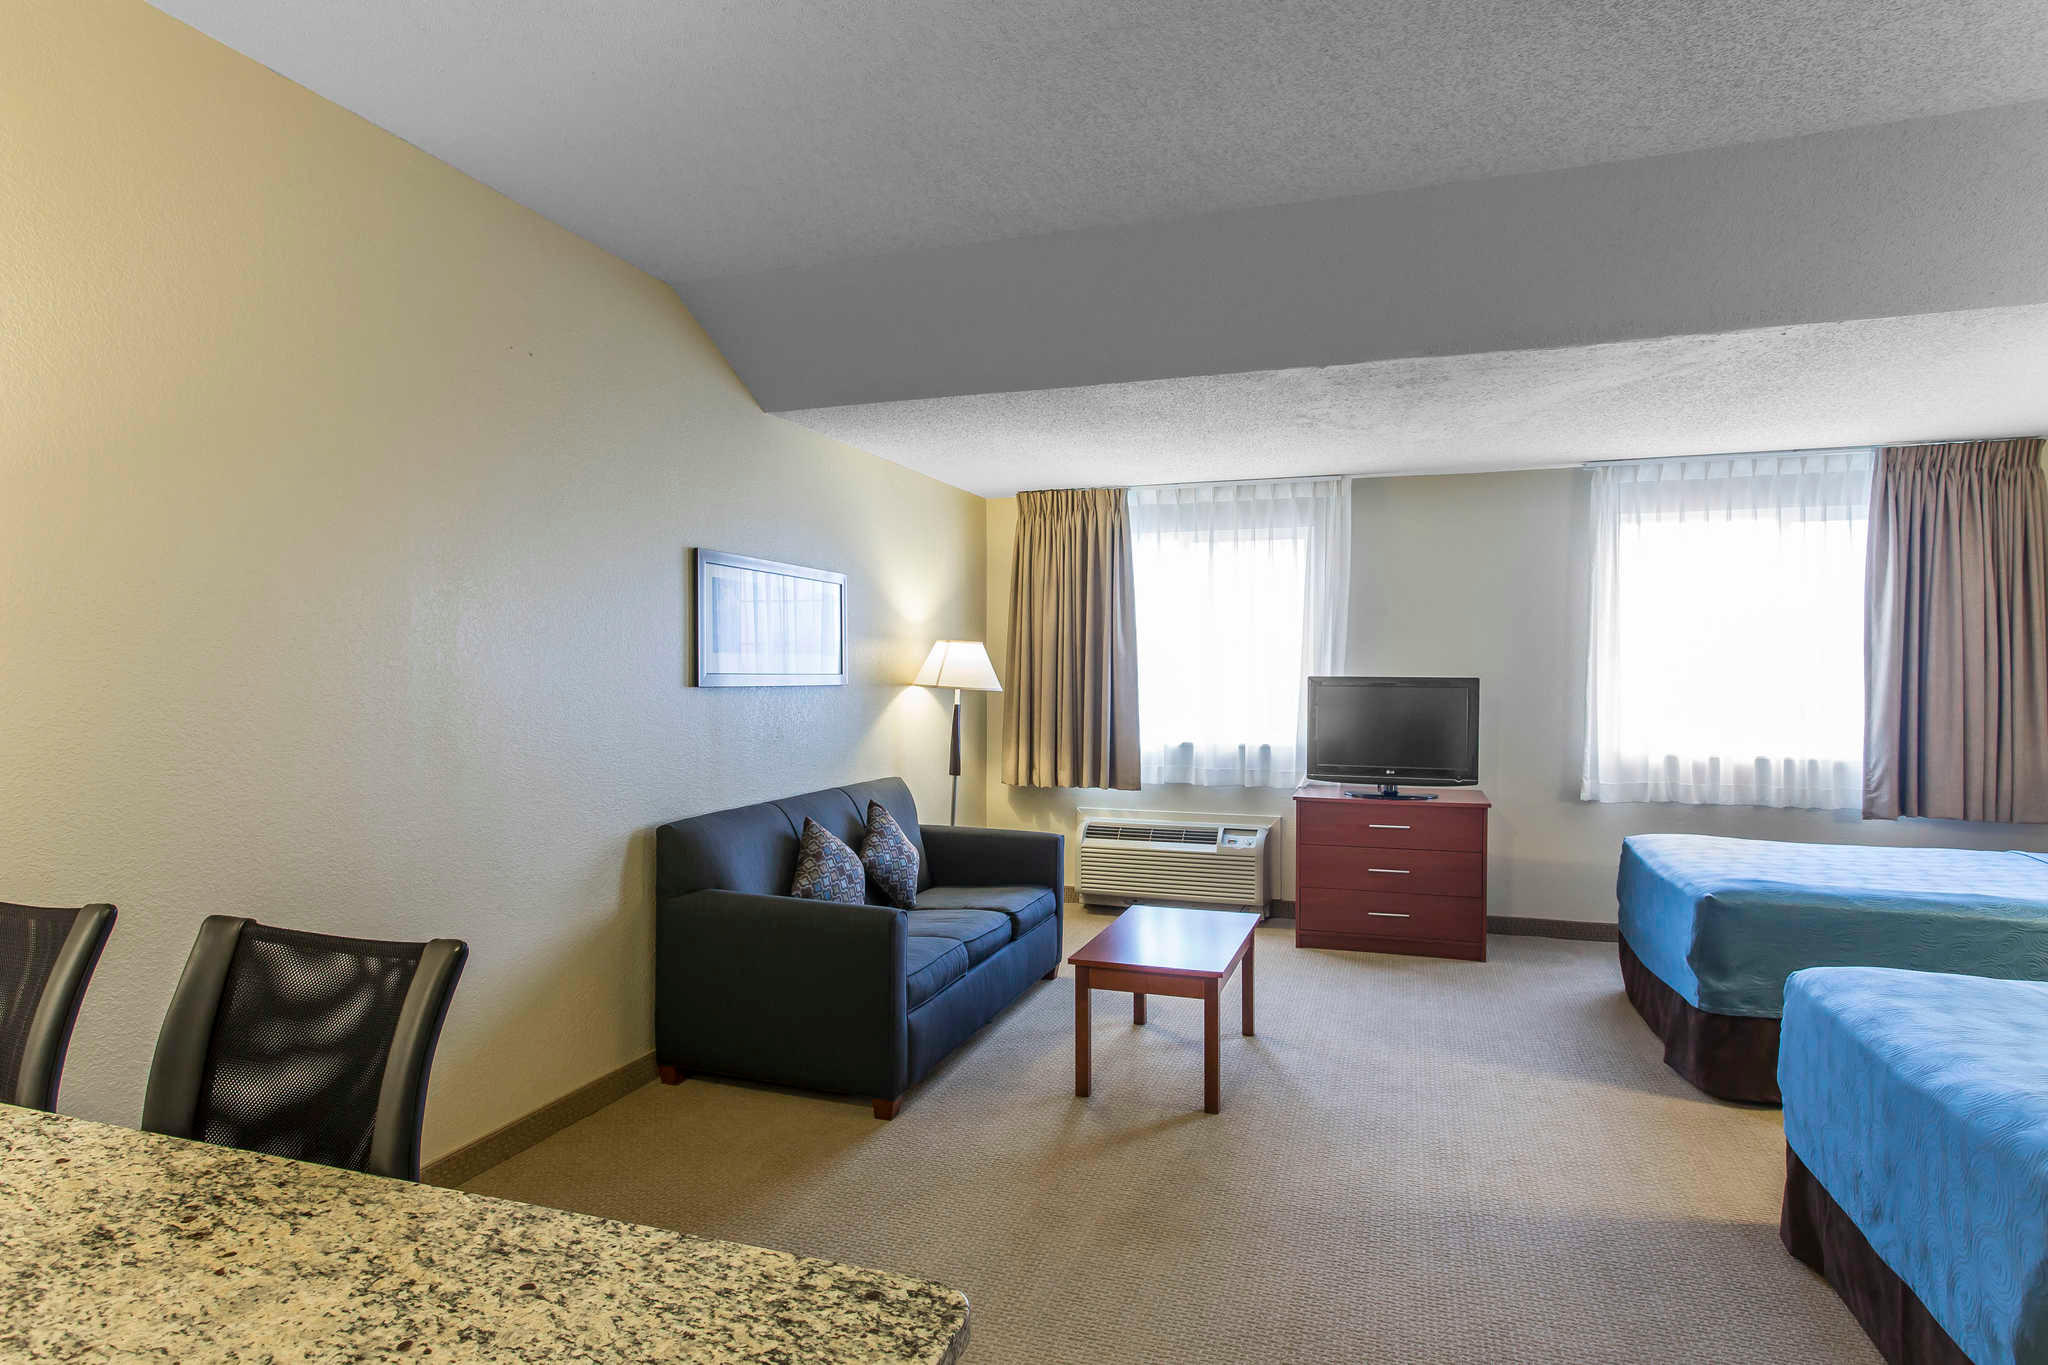 MainStay Suites image 31